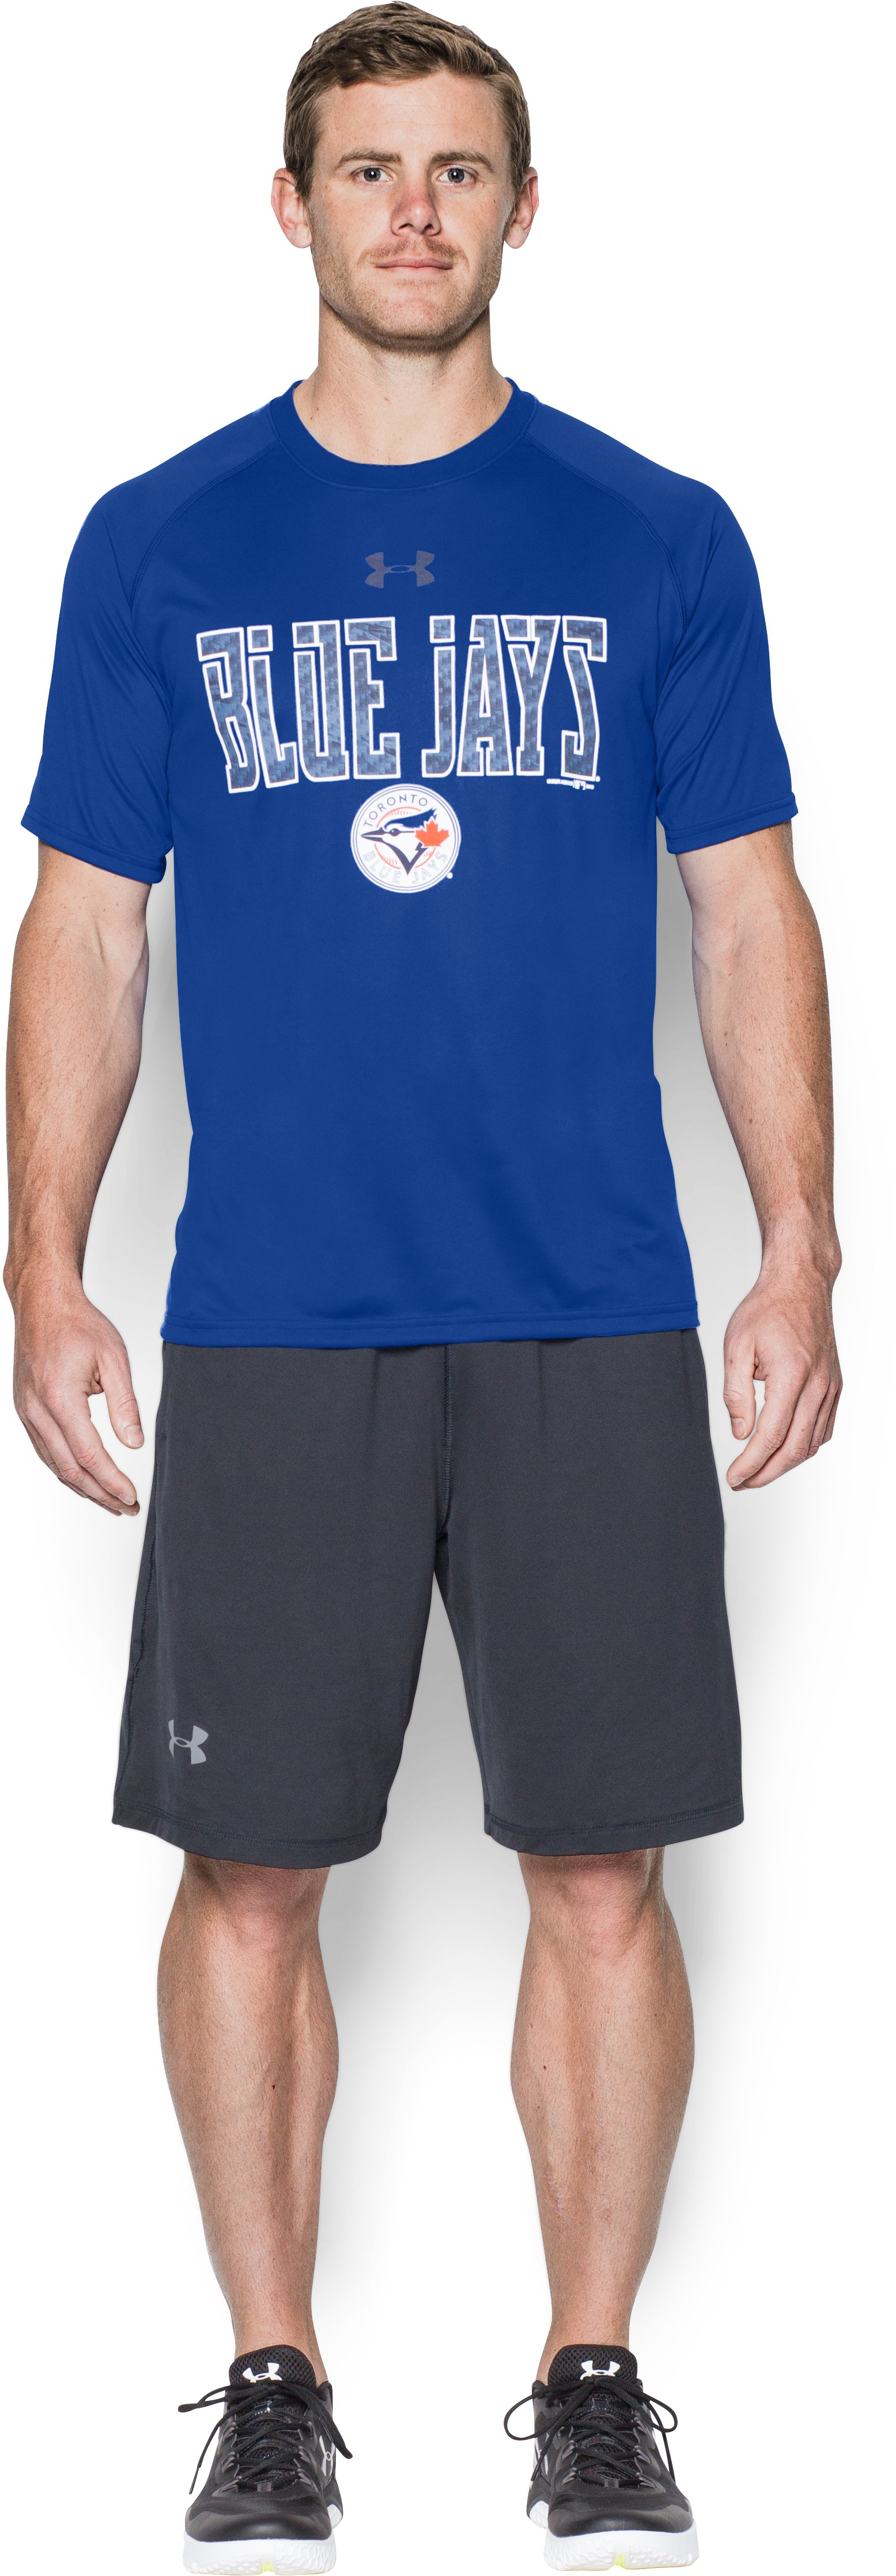 Men's Toronto Blue Jays Team Tech™ T-Shirt, Royal, Front